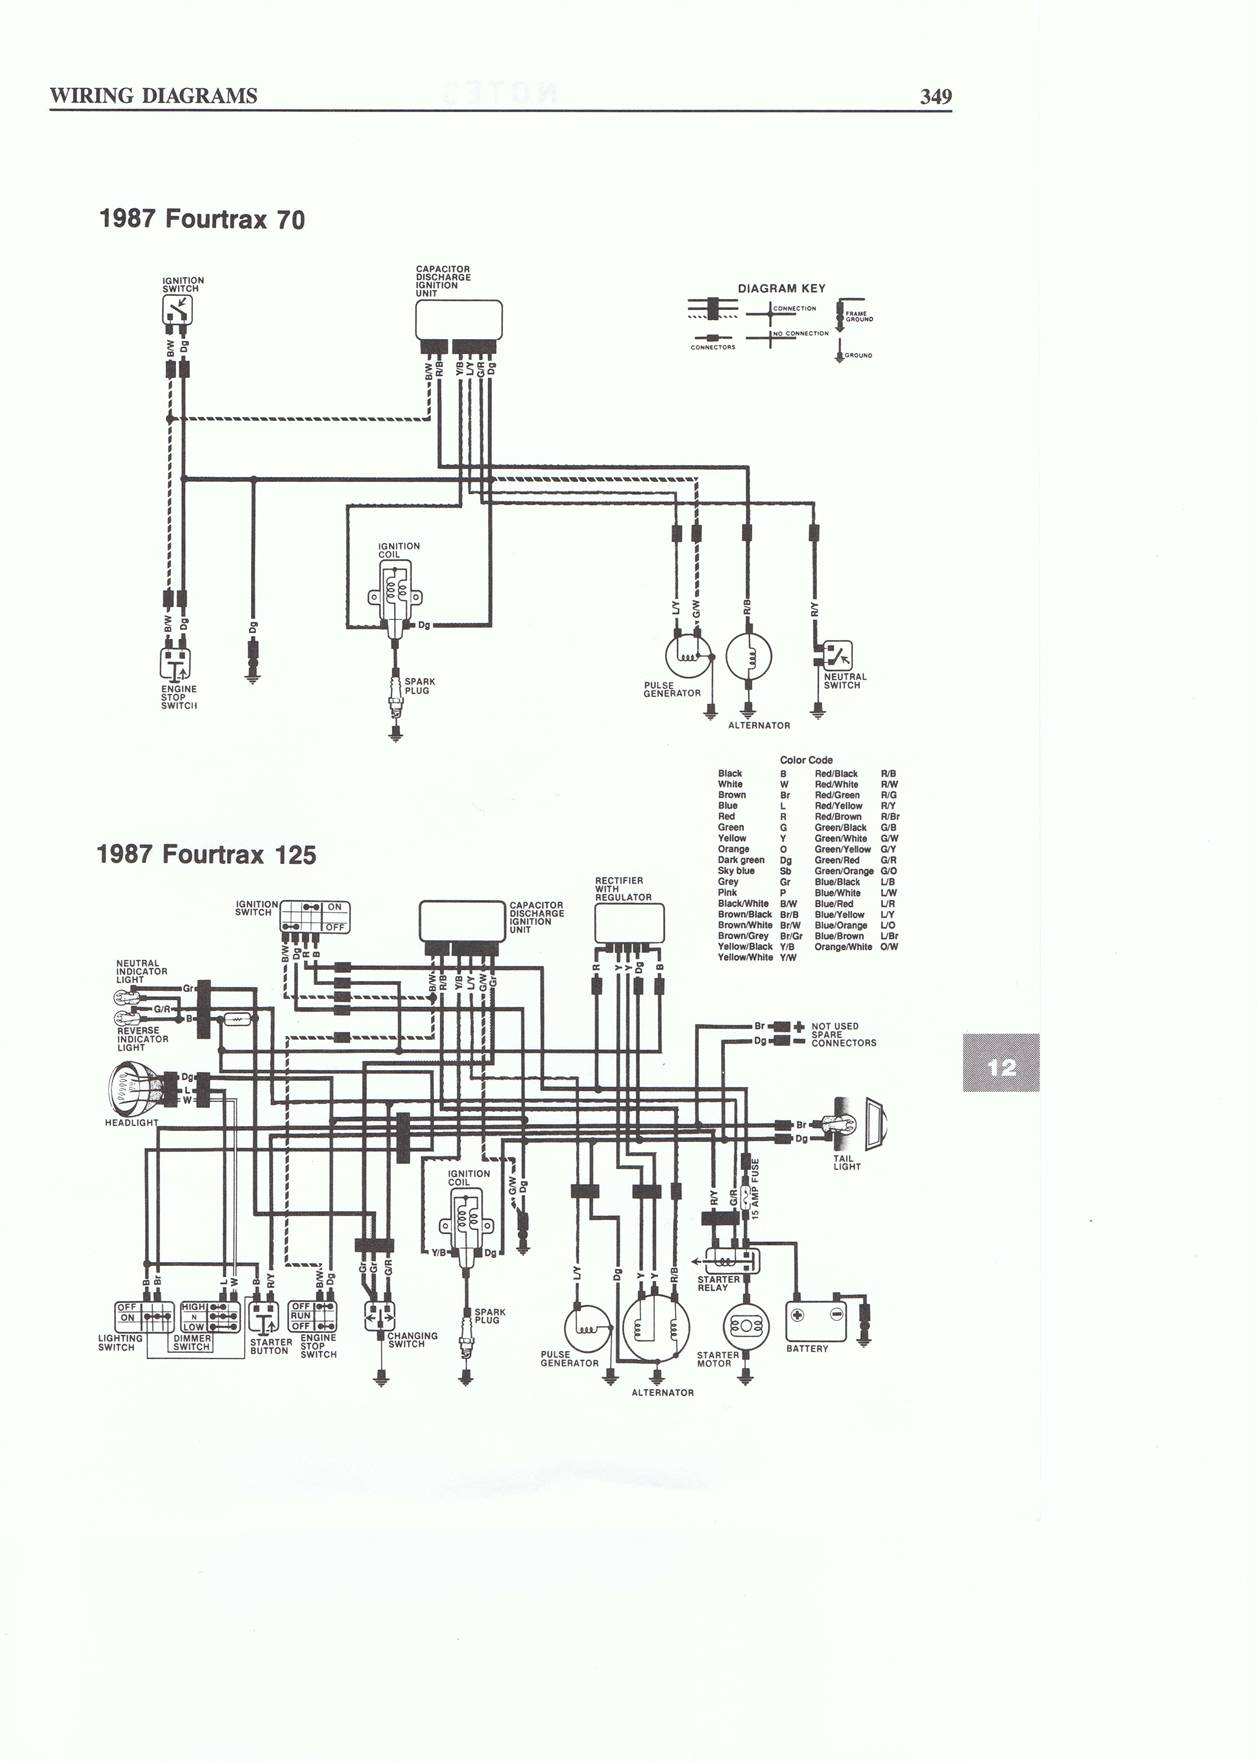 gy6 engine wiring diagram?t=1398725710 gy6 engine wiring diagram  at cos-gaming.co